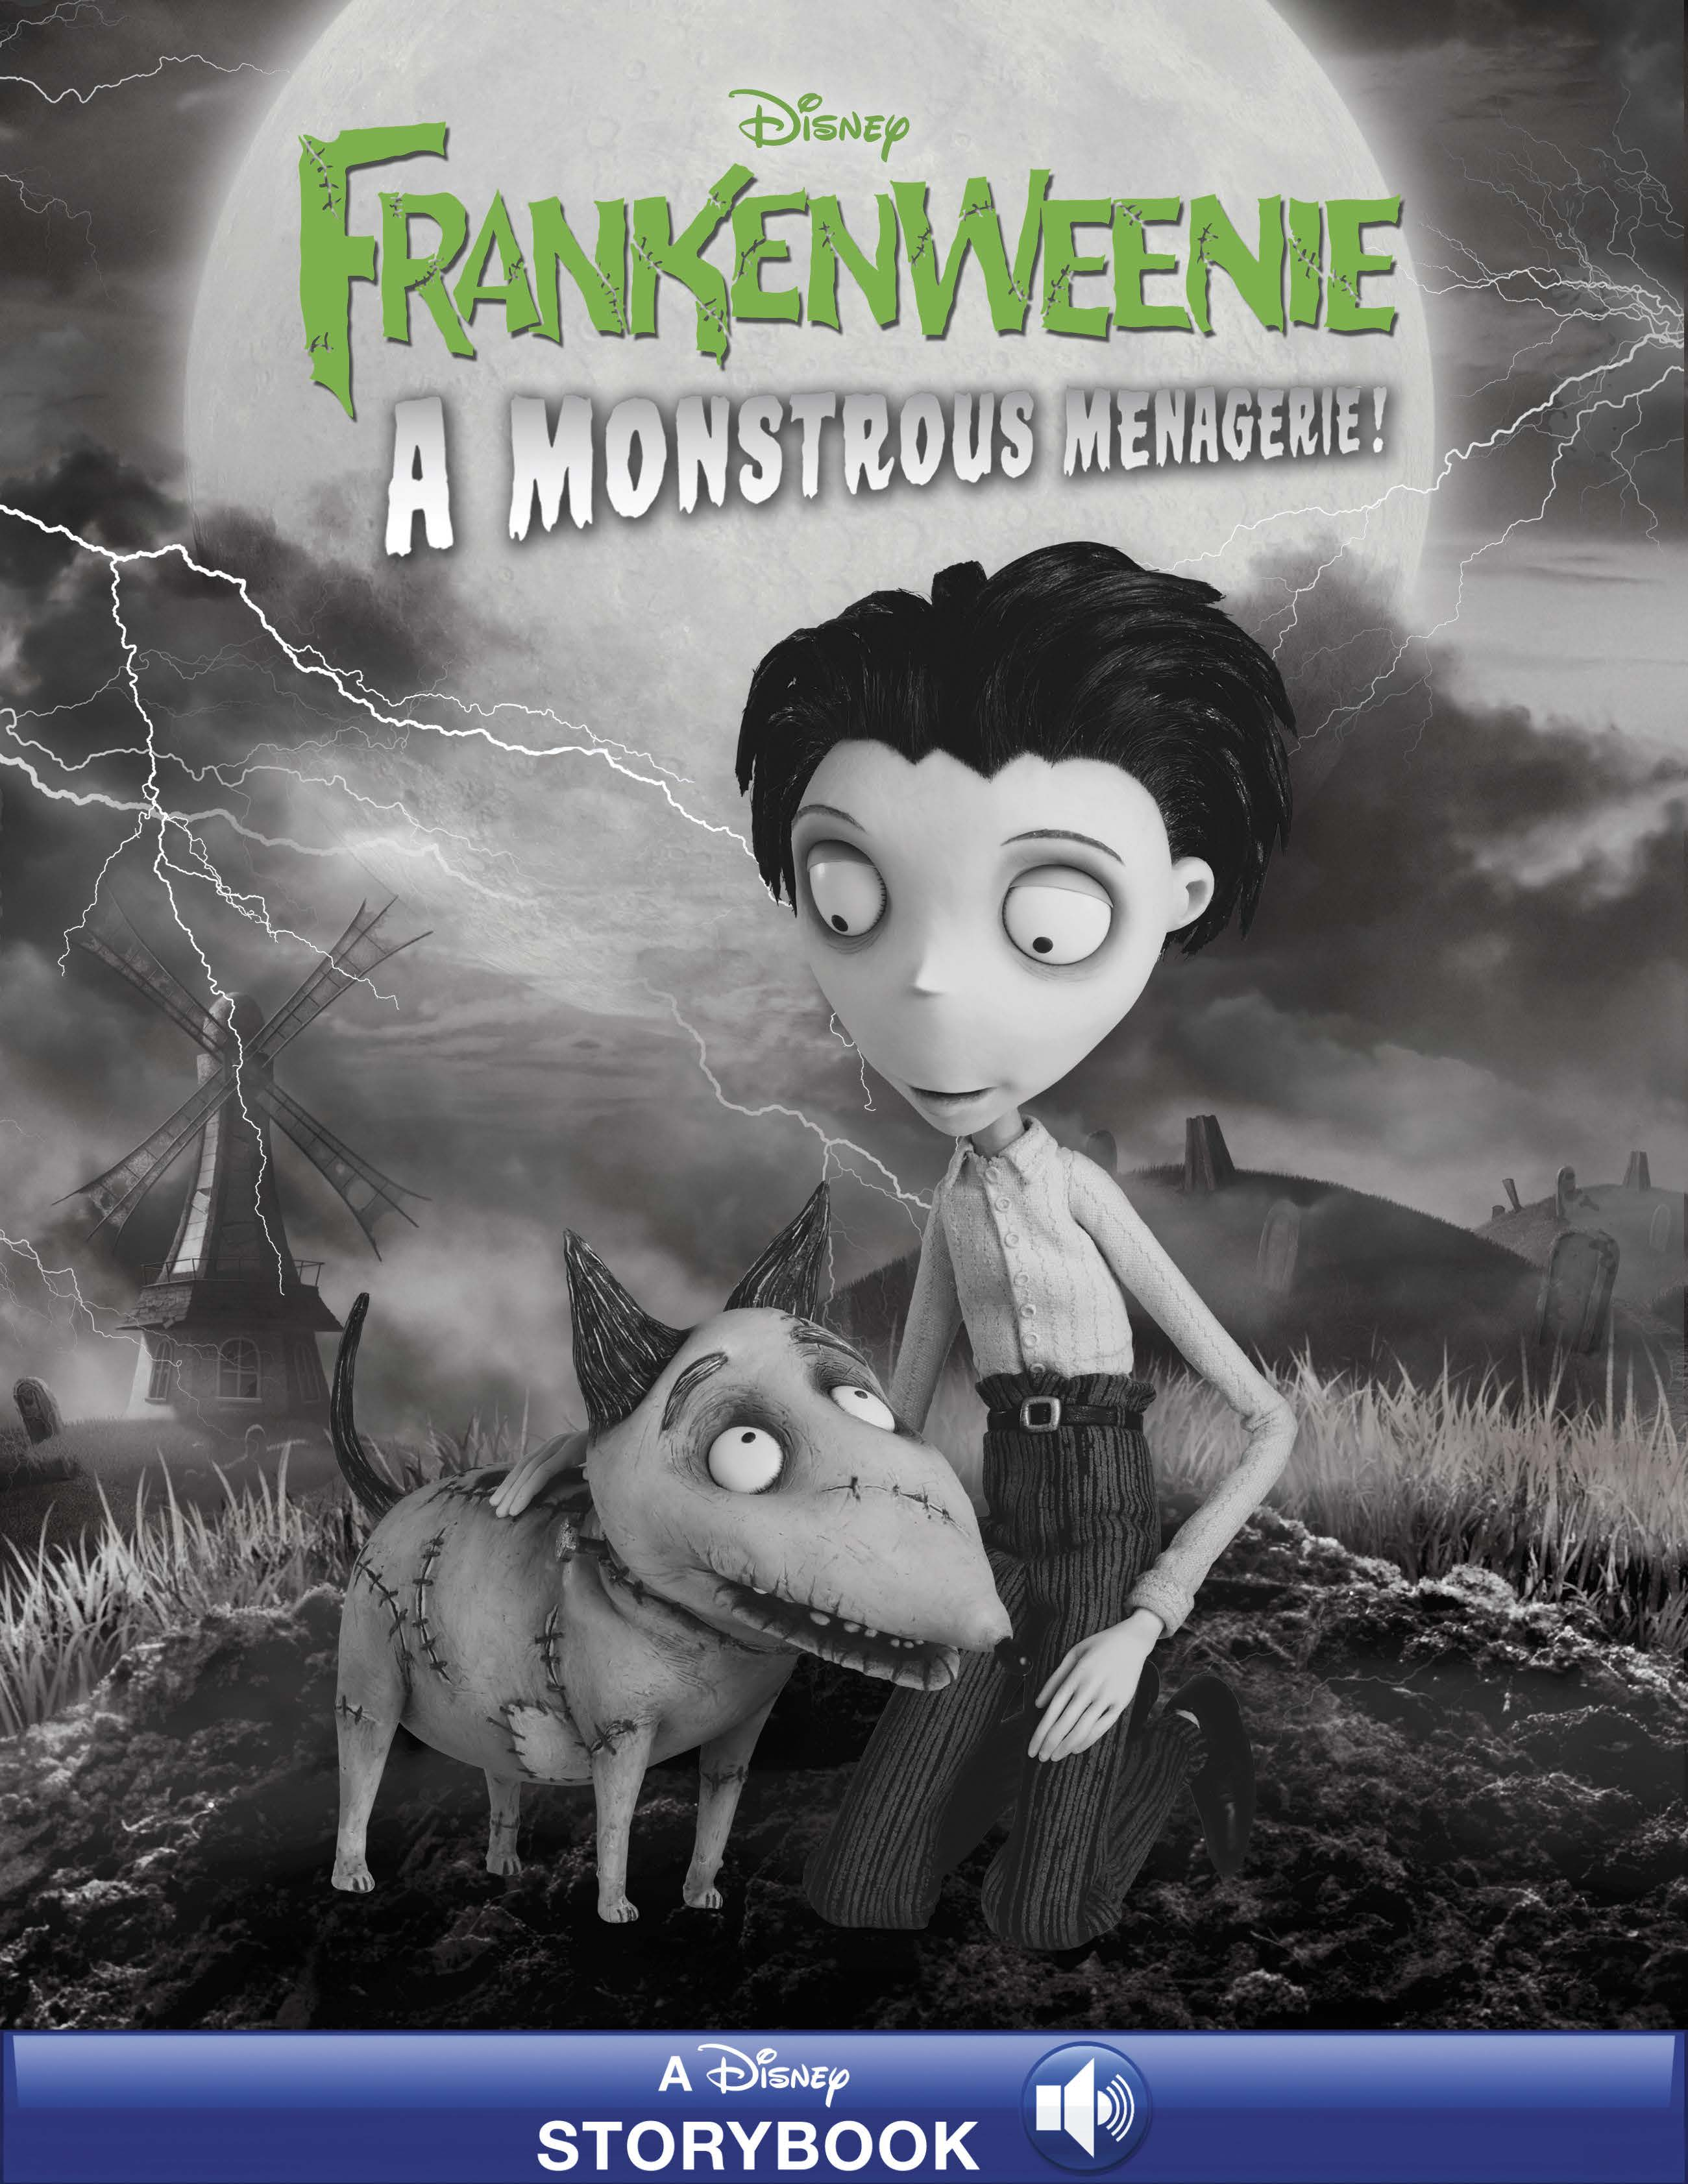 Frankenweenie:  A Monstrous Menagerie!